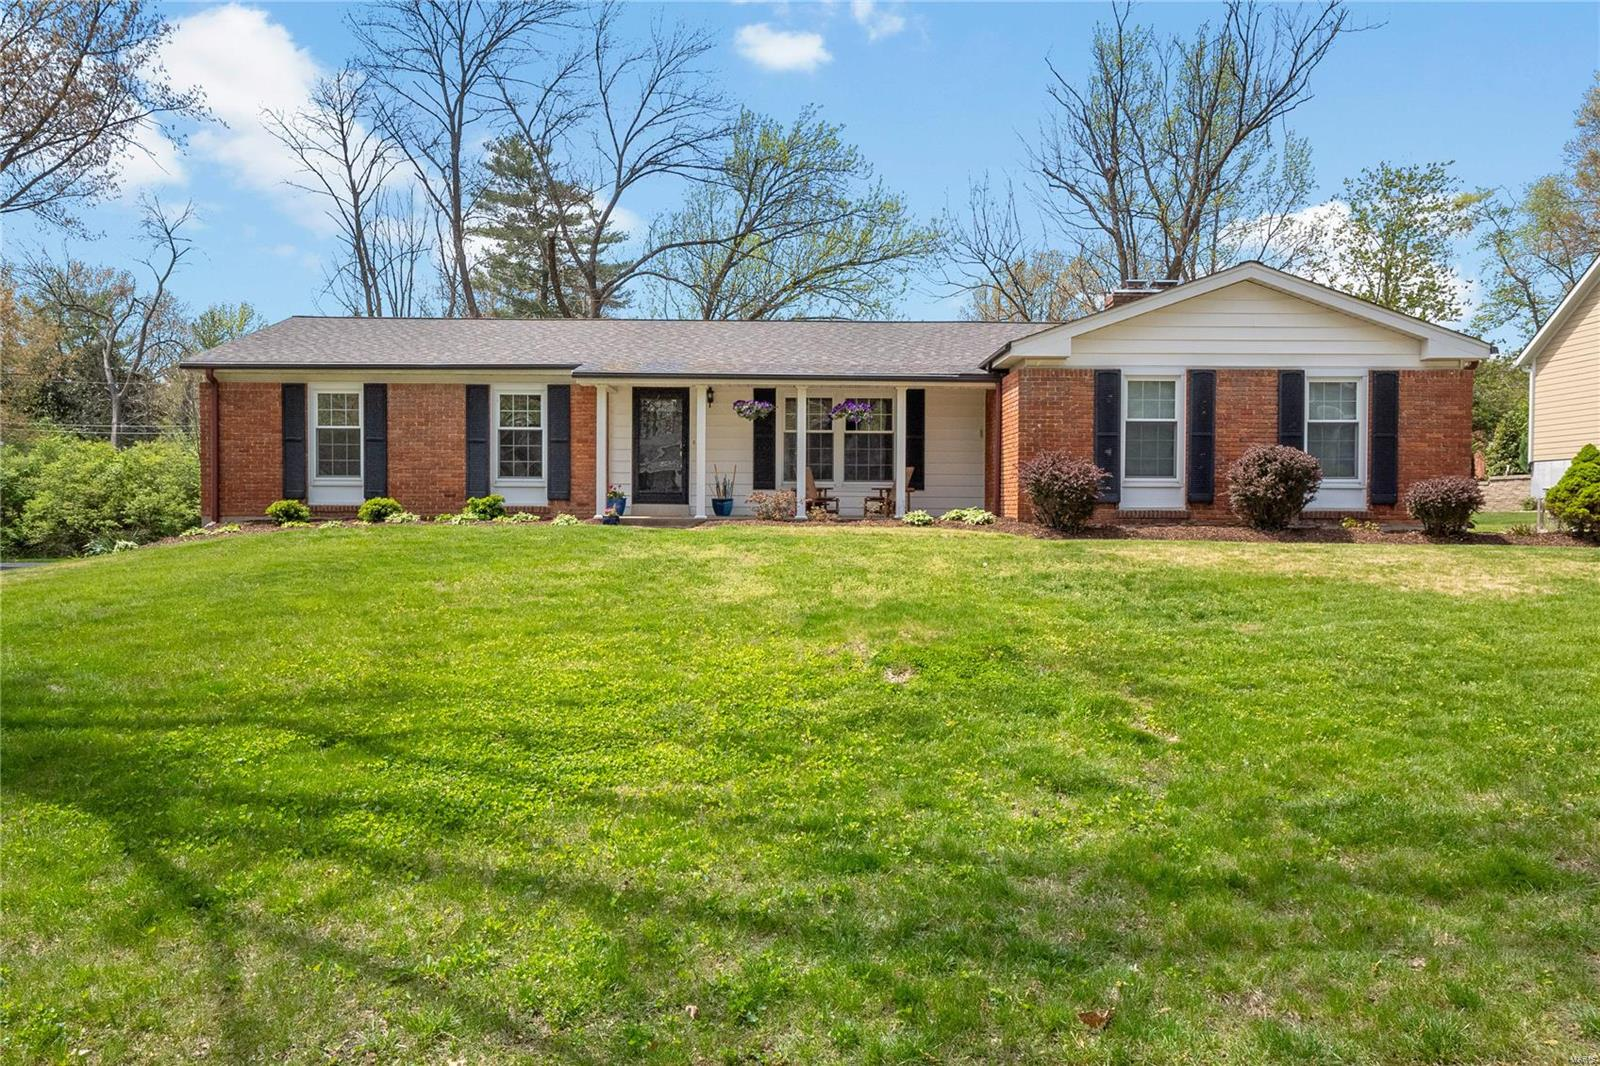 2047 Willow Leaf Drive Property Photo - Des Peres, MO real estate listing